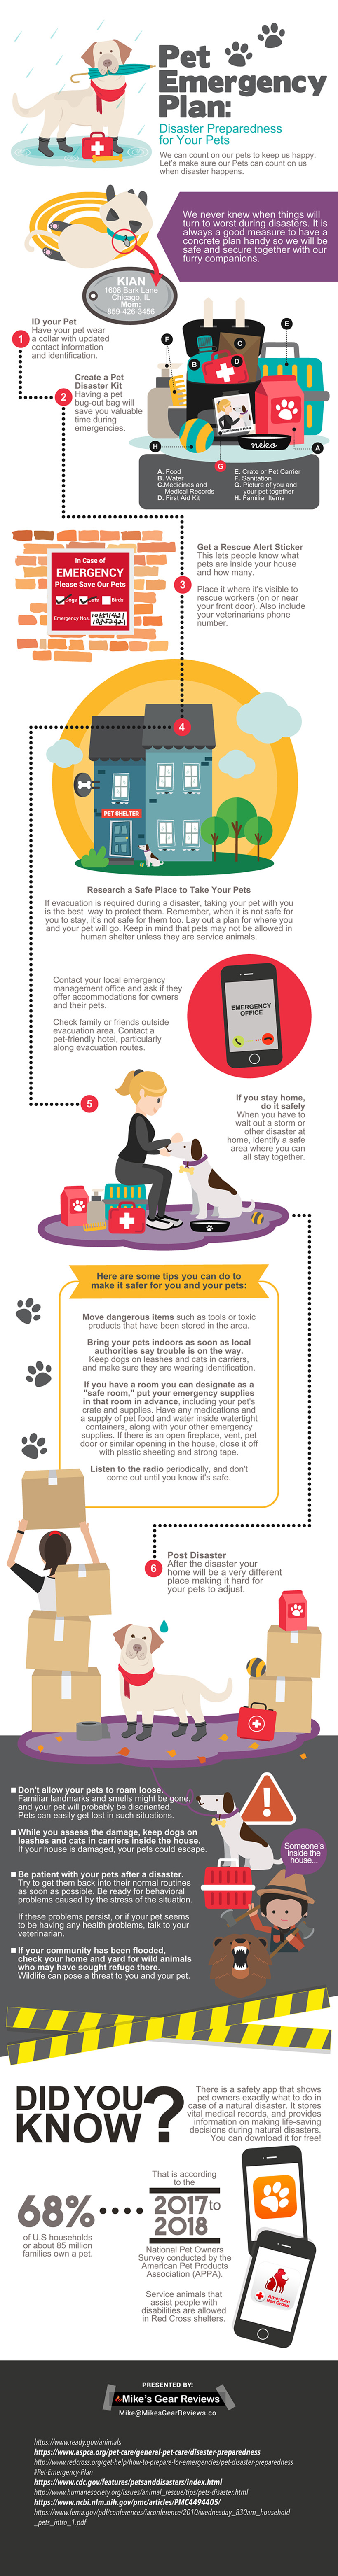 PET-EMERGENCY-PLAN-IG | Pet Emergency Plan: Disaster Preparedness for Your Pets